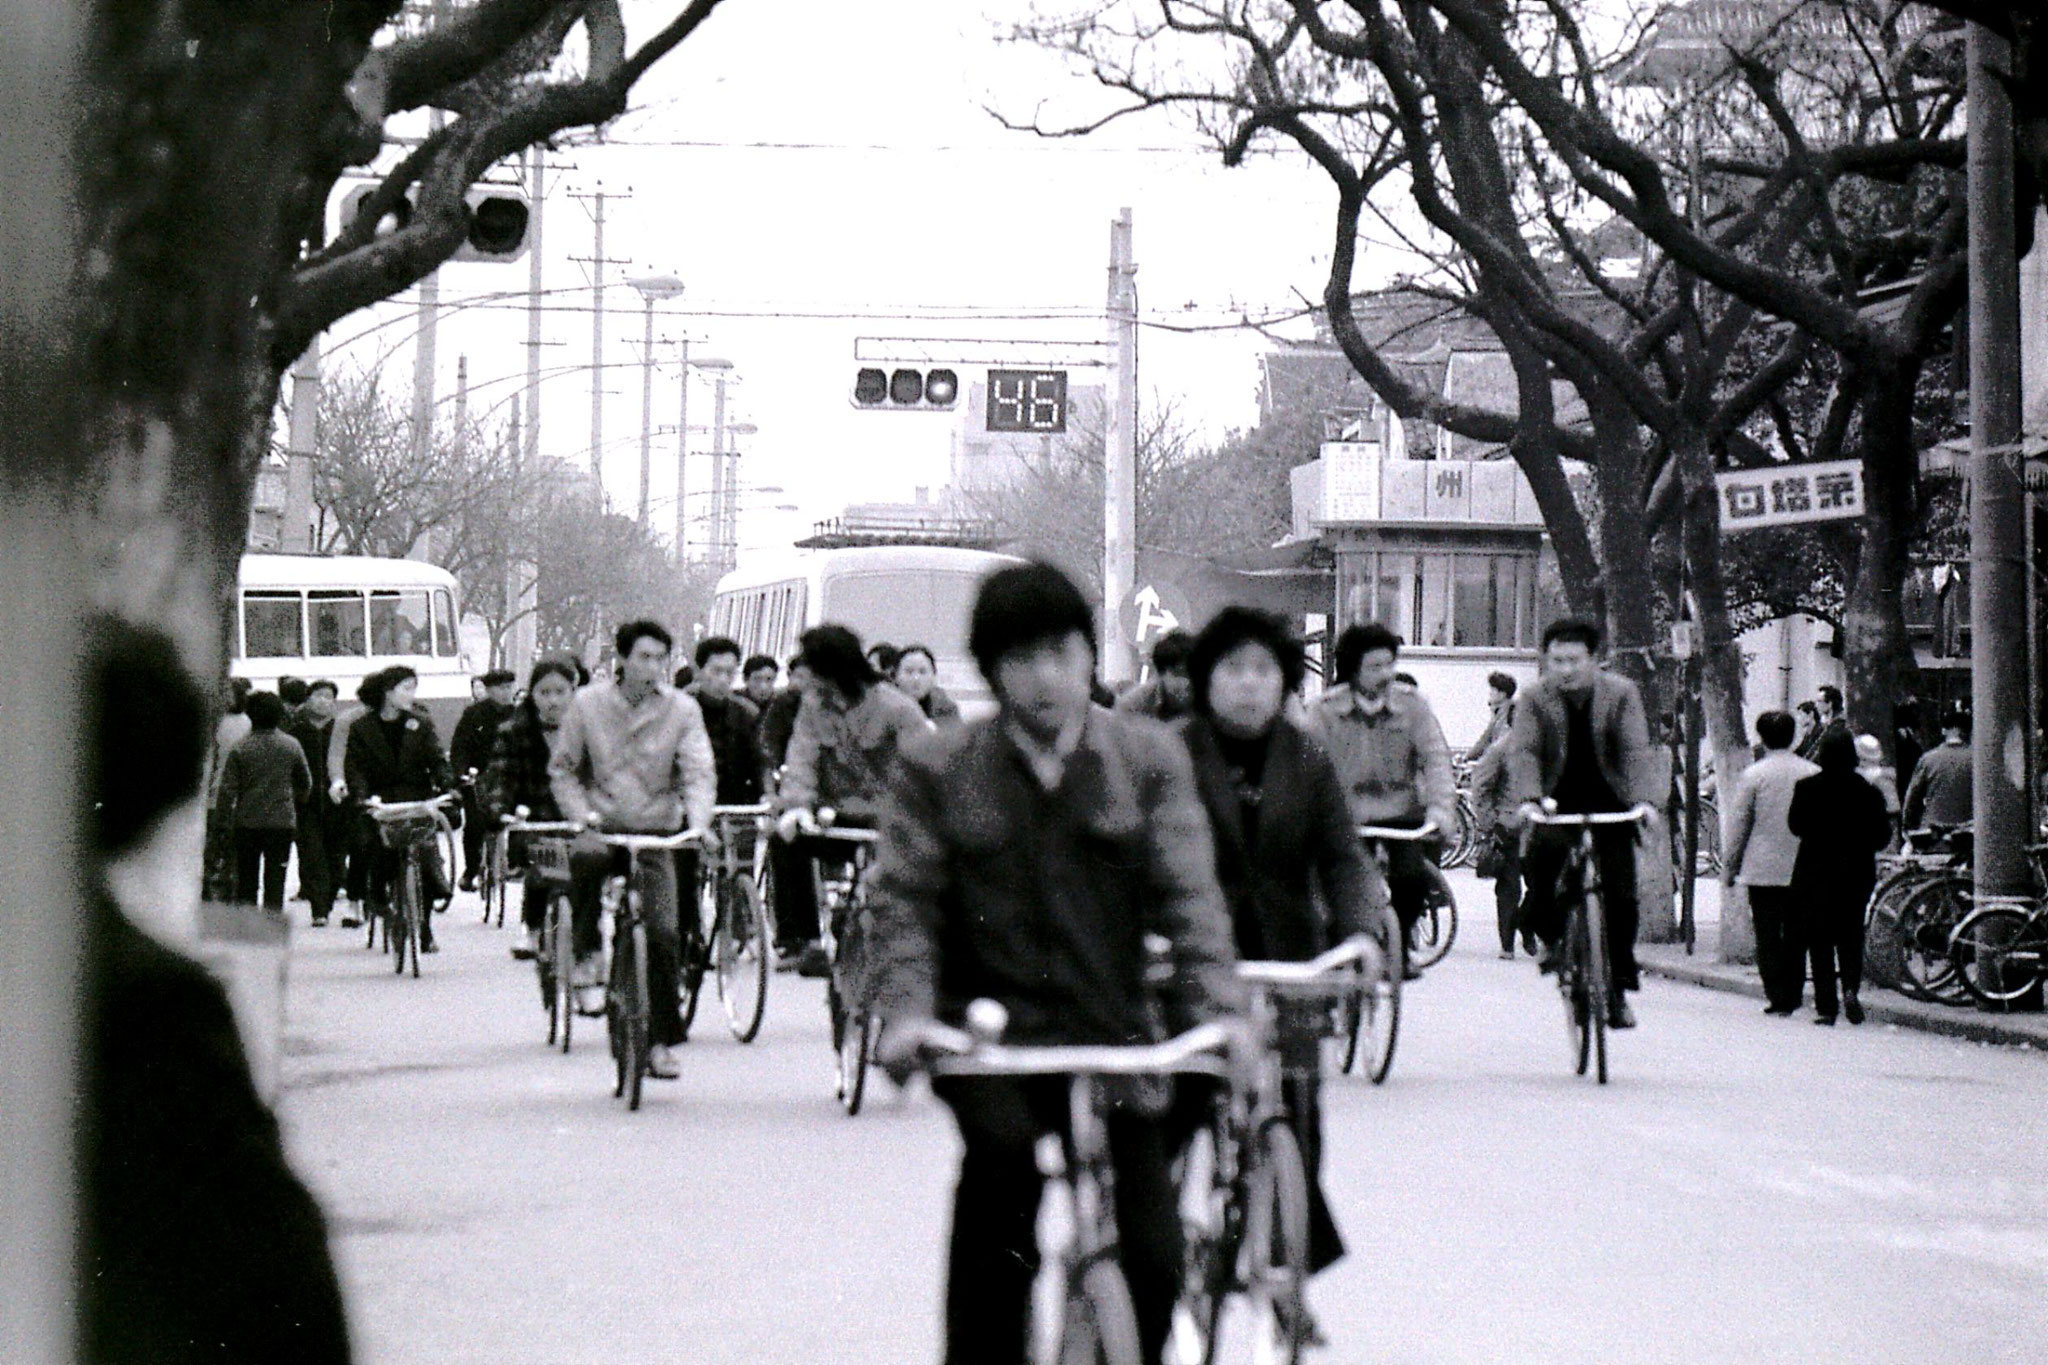 22/3/1989: 29: Suzhou traffic lights